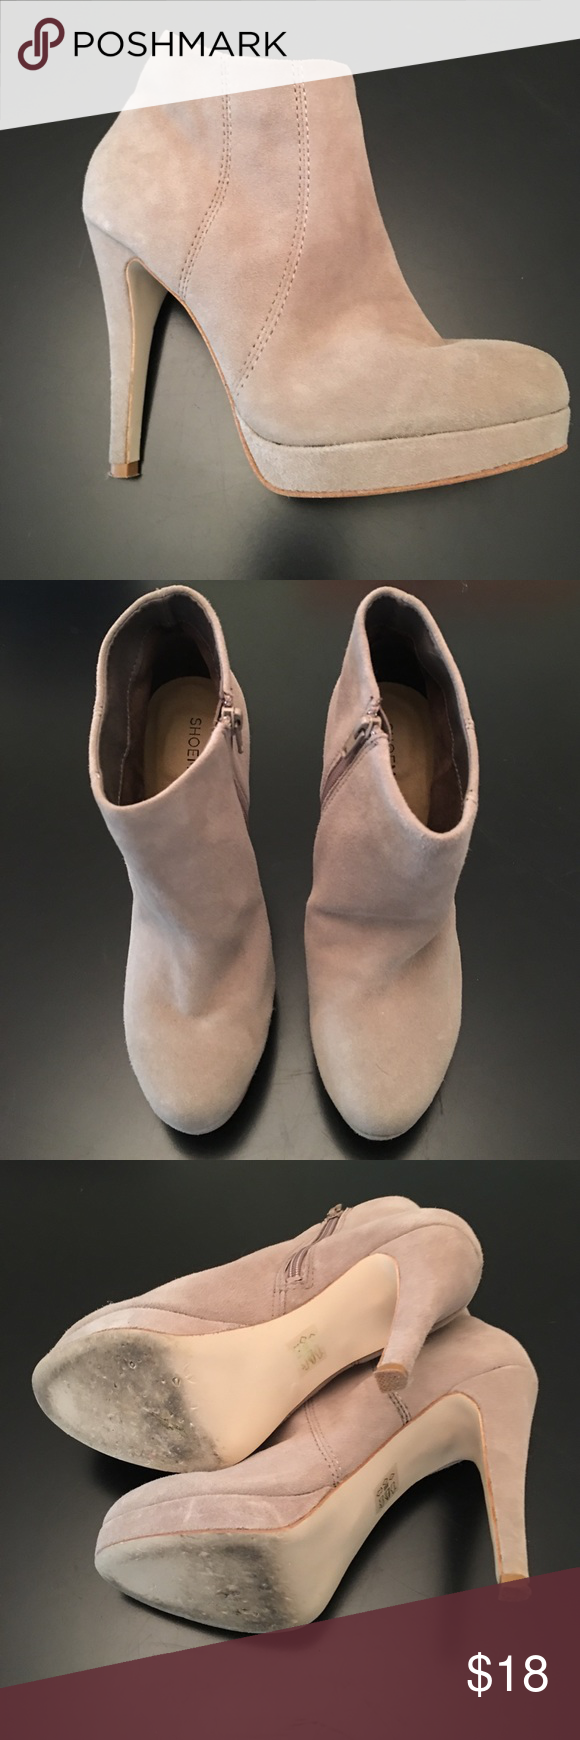 """ShoeMint Tan Suede Booties Size 8 ShoeMint Tan Suede Booties. In excellent condition. Only worn twice. 4"""" heel. Shoemint Shoes Ankle Boots & Booties"""